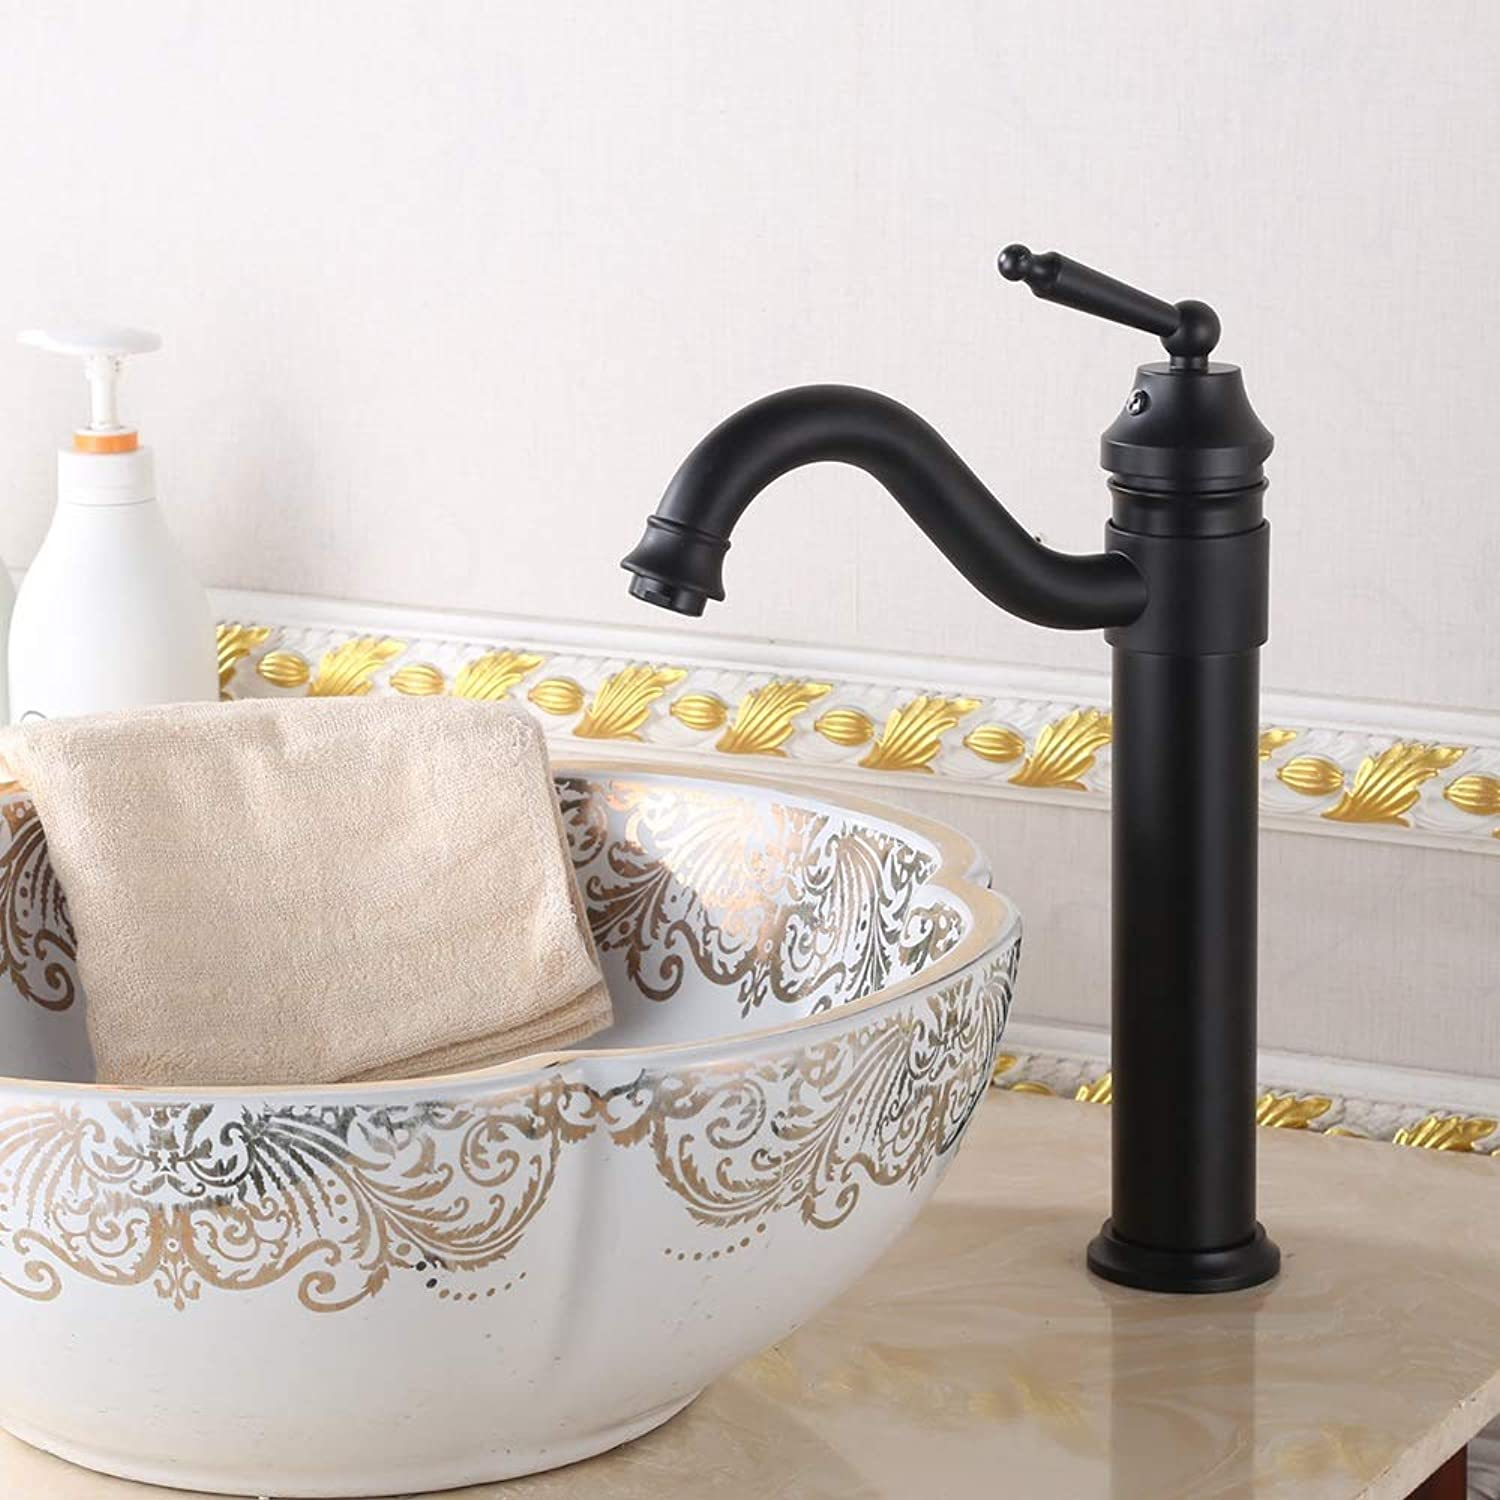 KUVV Clean Copper Black Ancient Faucet Above Counter Basin 360 Degree redation Height Basin Faucet Black Iron High S Curved Black Faucet